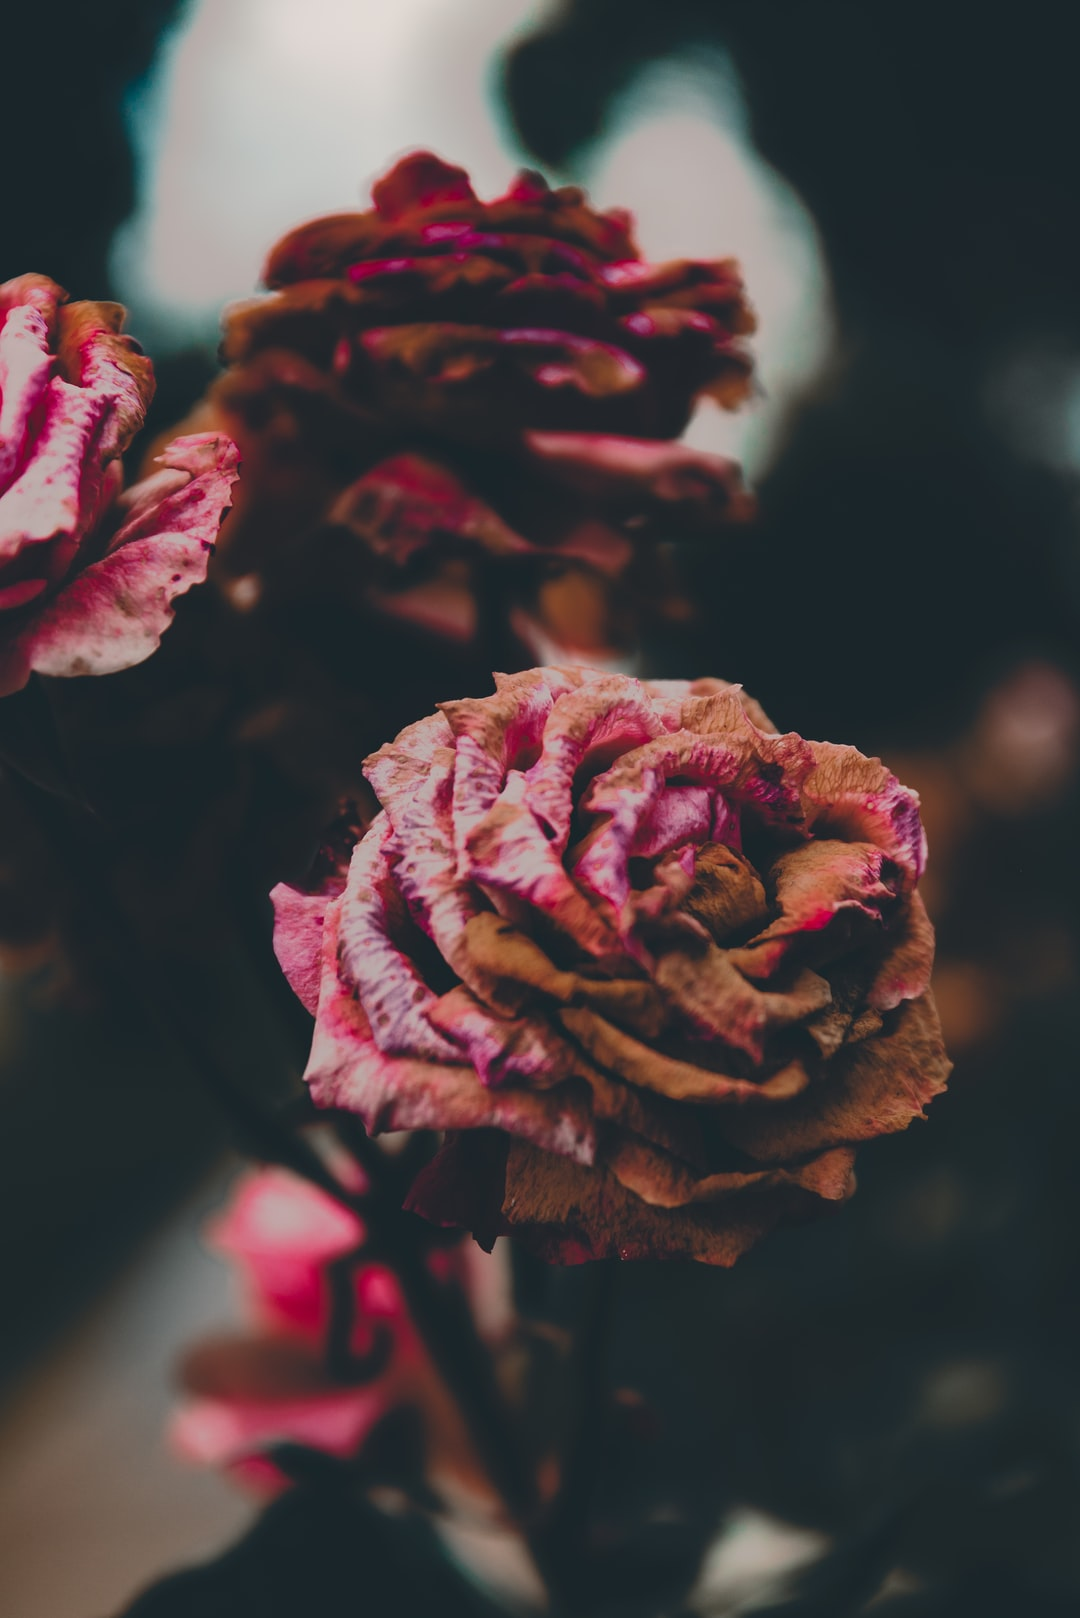 Dying decaying pink flowers in an old neighbourhood on a gloomy day